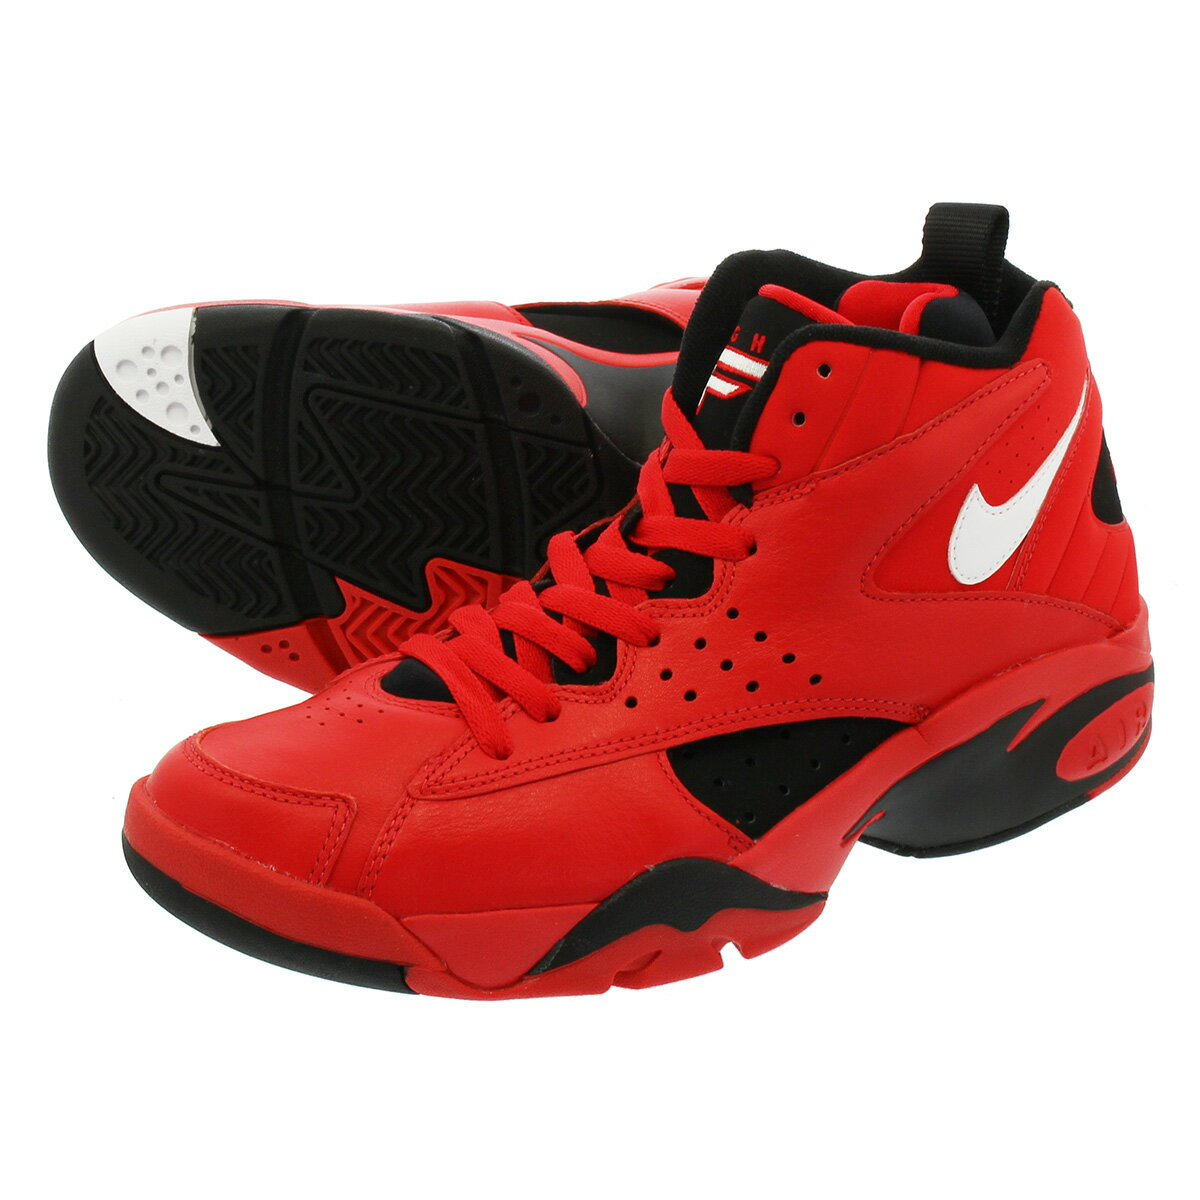 【楽天スーパーSALE】 NIKE AIR MAESTRO II QS ナイキ エア マエストロ 2 QSUNIVERSITY RED/WHITE/BLACK aj9281-600